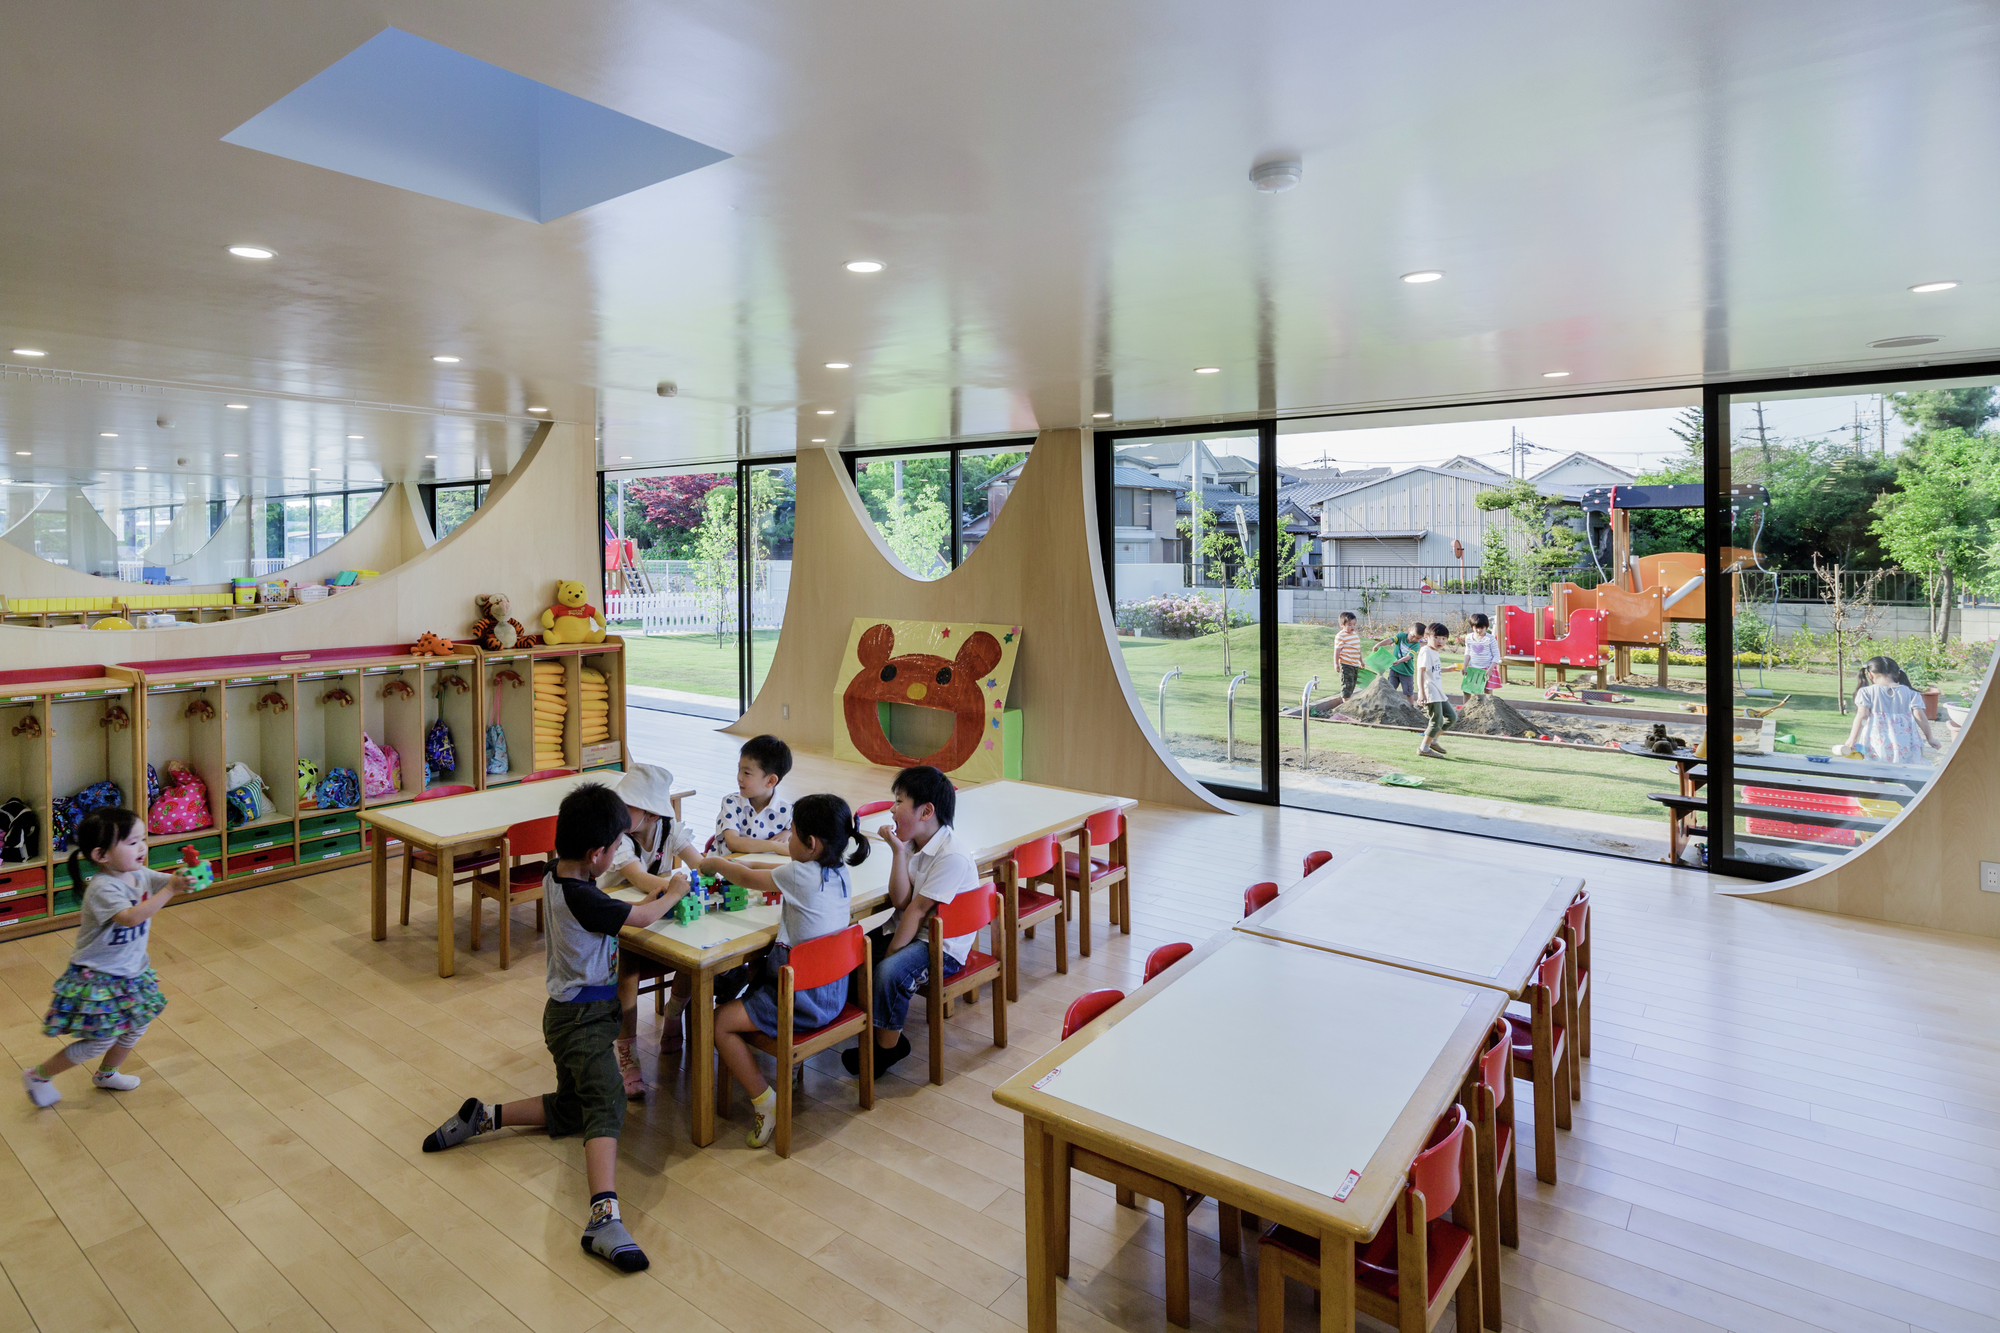 Architecture Design For Virtual Classroom ~ Yutaka kindergarten sugawaradaisuke archdaily